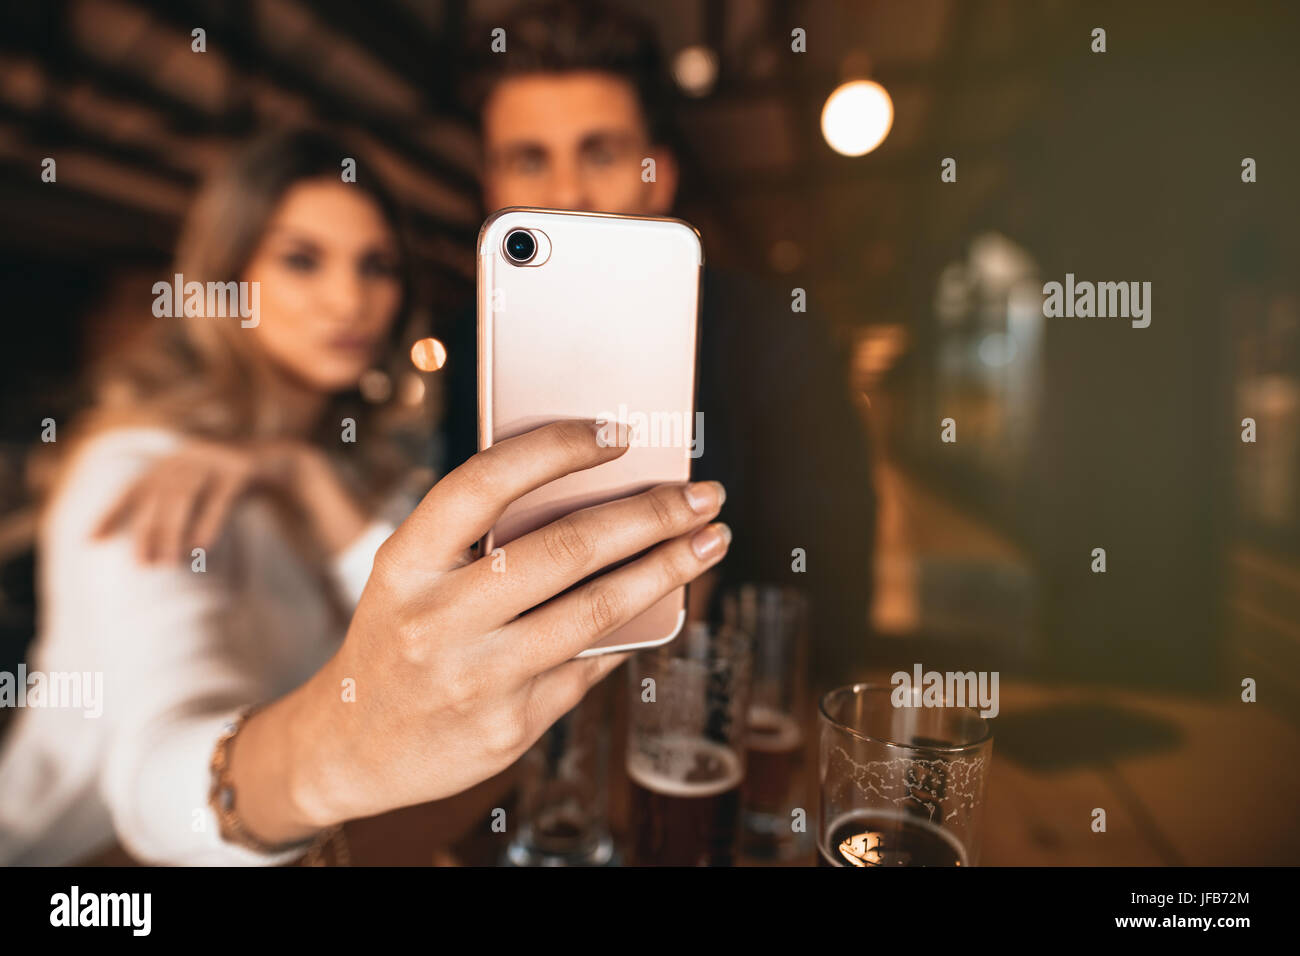 Close up of couple sitting in the bar and taking a selfie with smart phone. Focus on mobile phone in hand of woman. - Stock Image